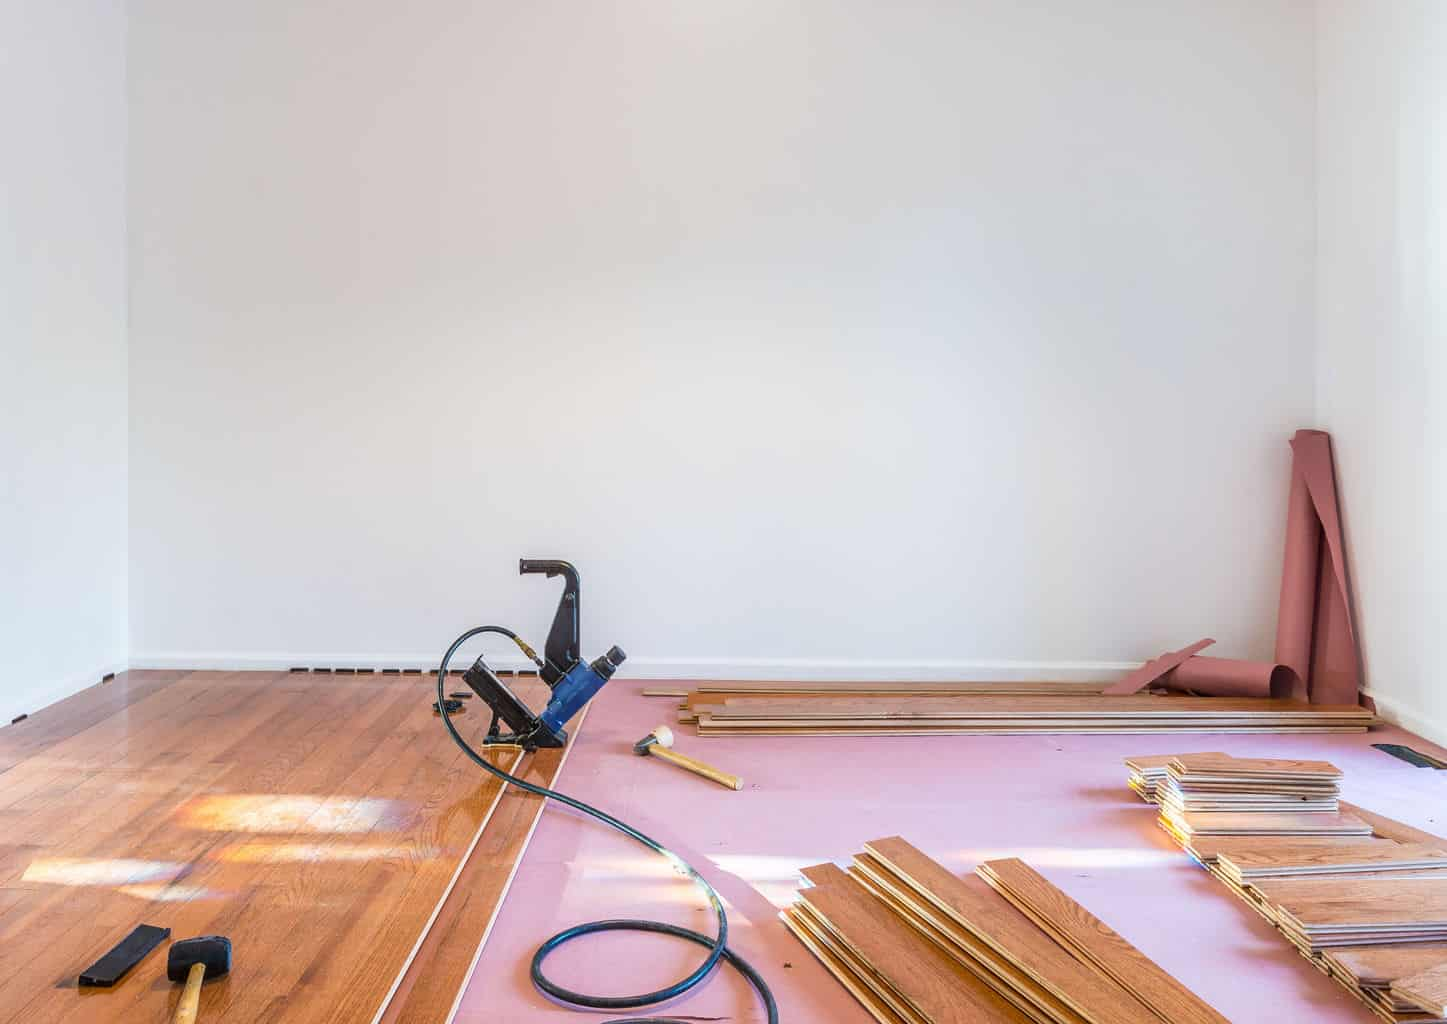 There Are Tricks For Bamboo Flooring Installing That Can Make The Job Faster With Better Results Floor Over Fir No Suloor